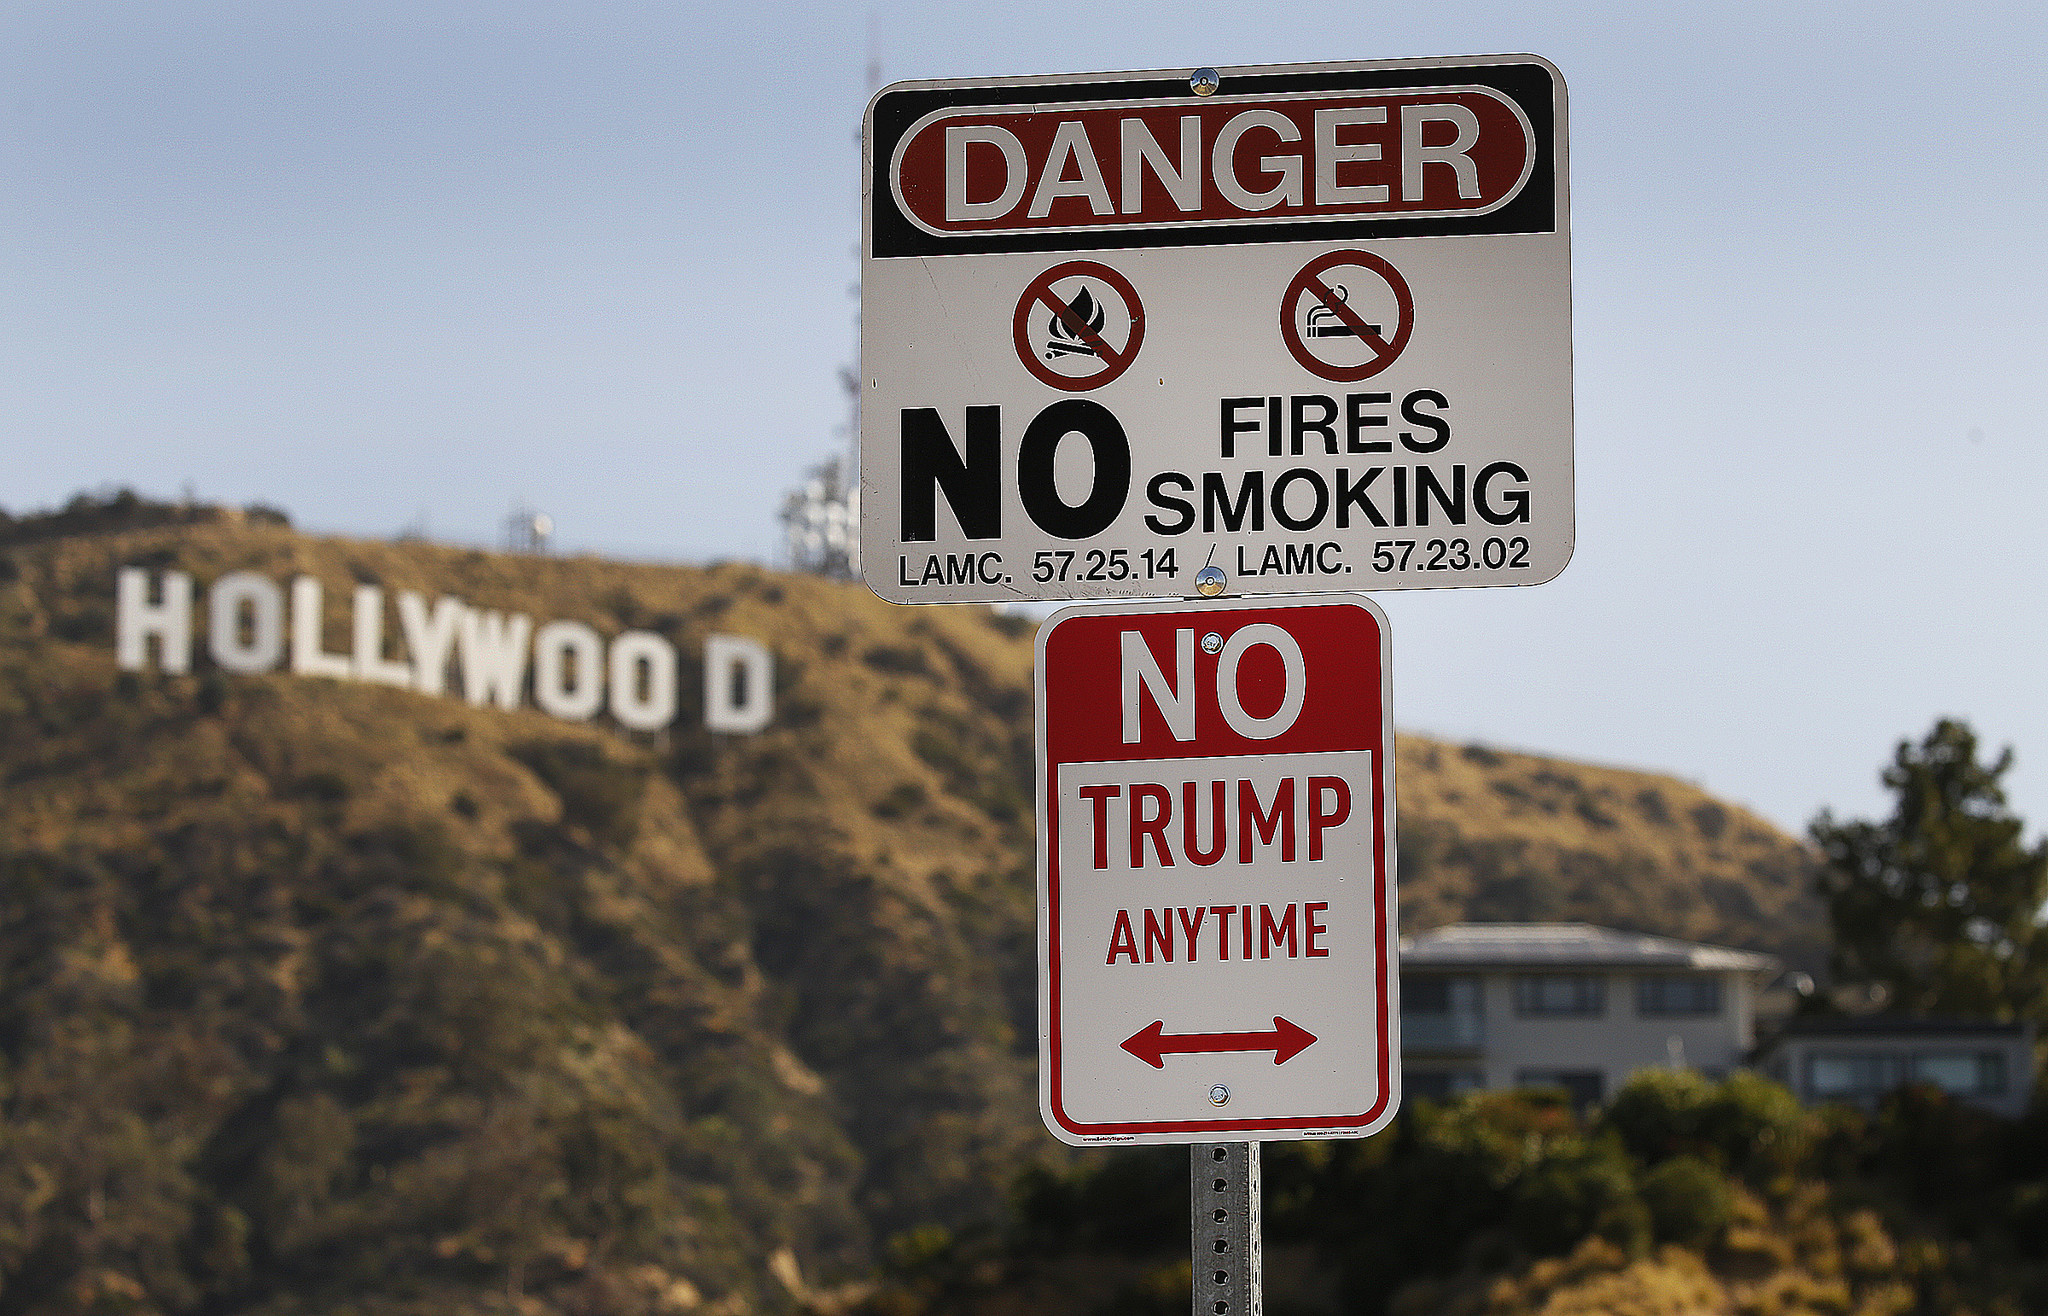 """The art installation """"No Trump Anytime"""" disguised as a parking sign in Hollywood."""